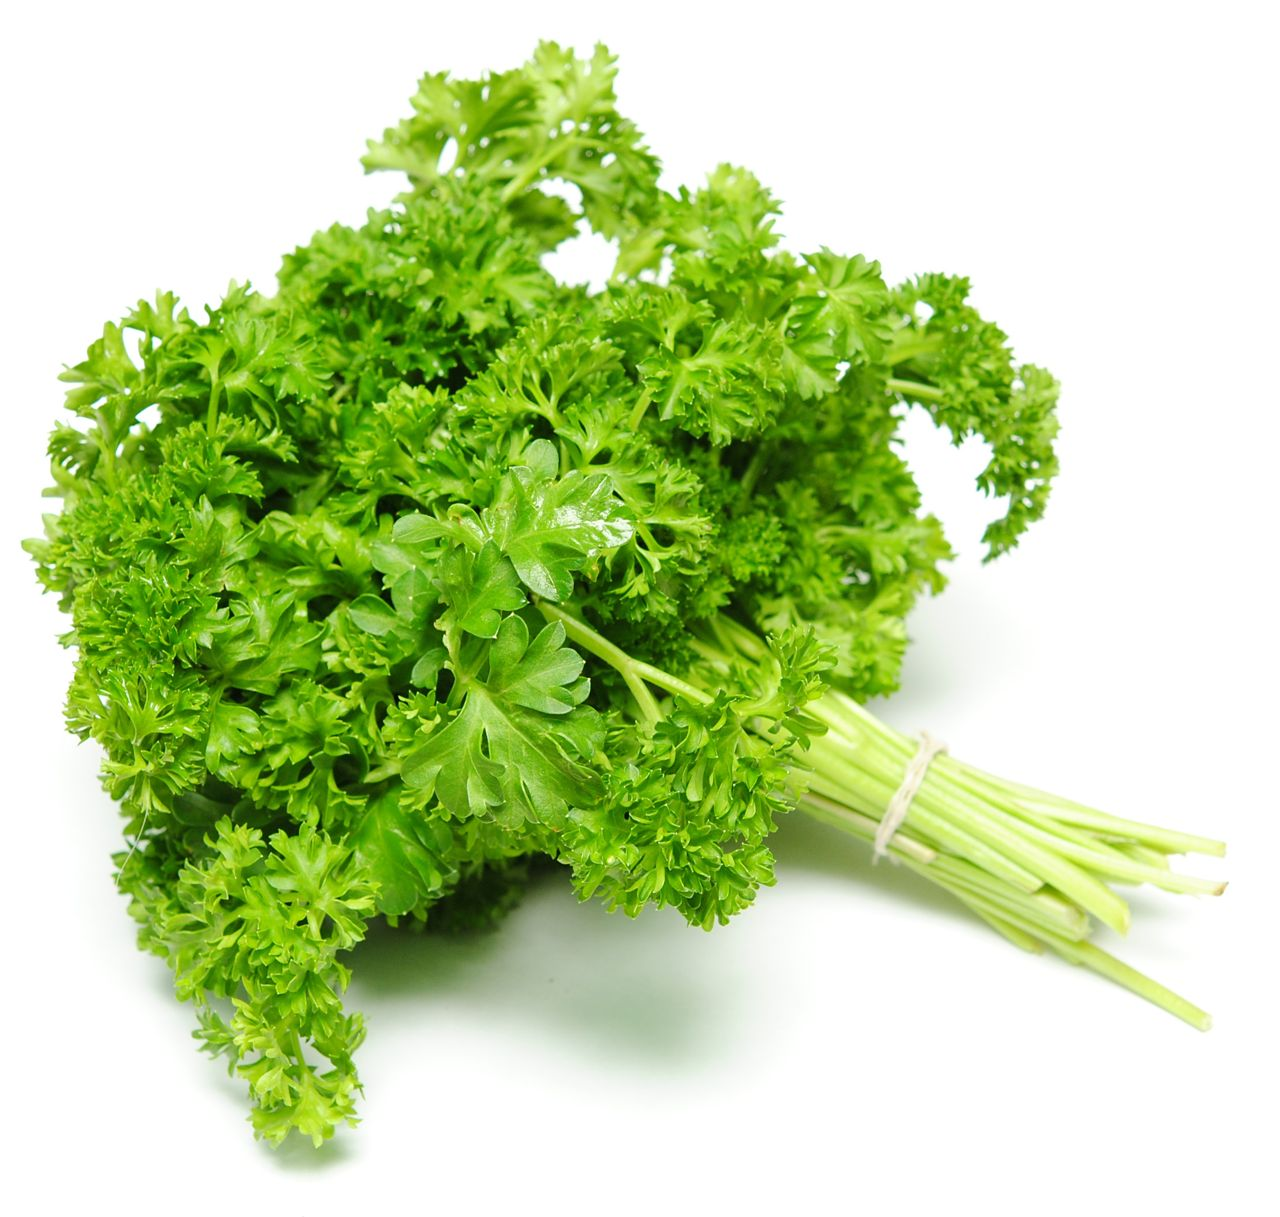 Parsley to soothe your love bite